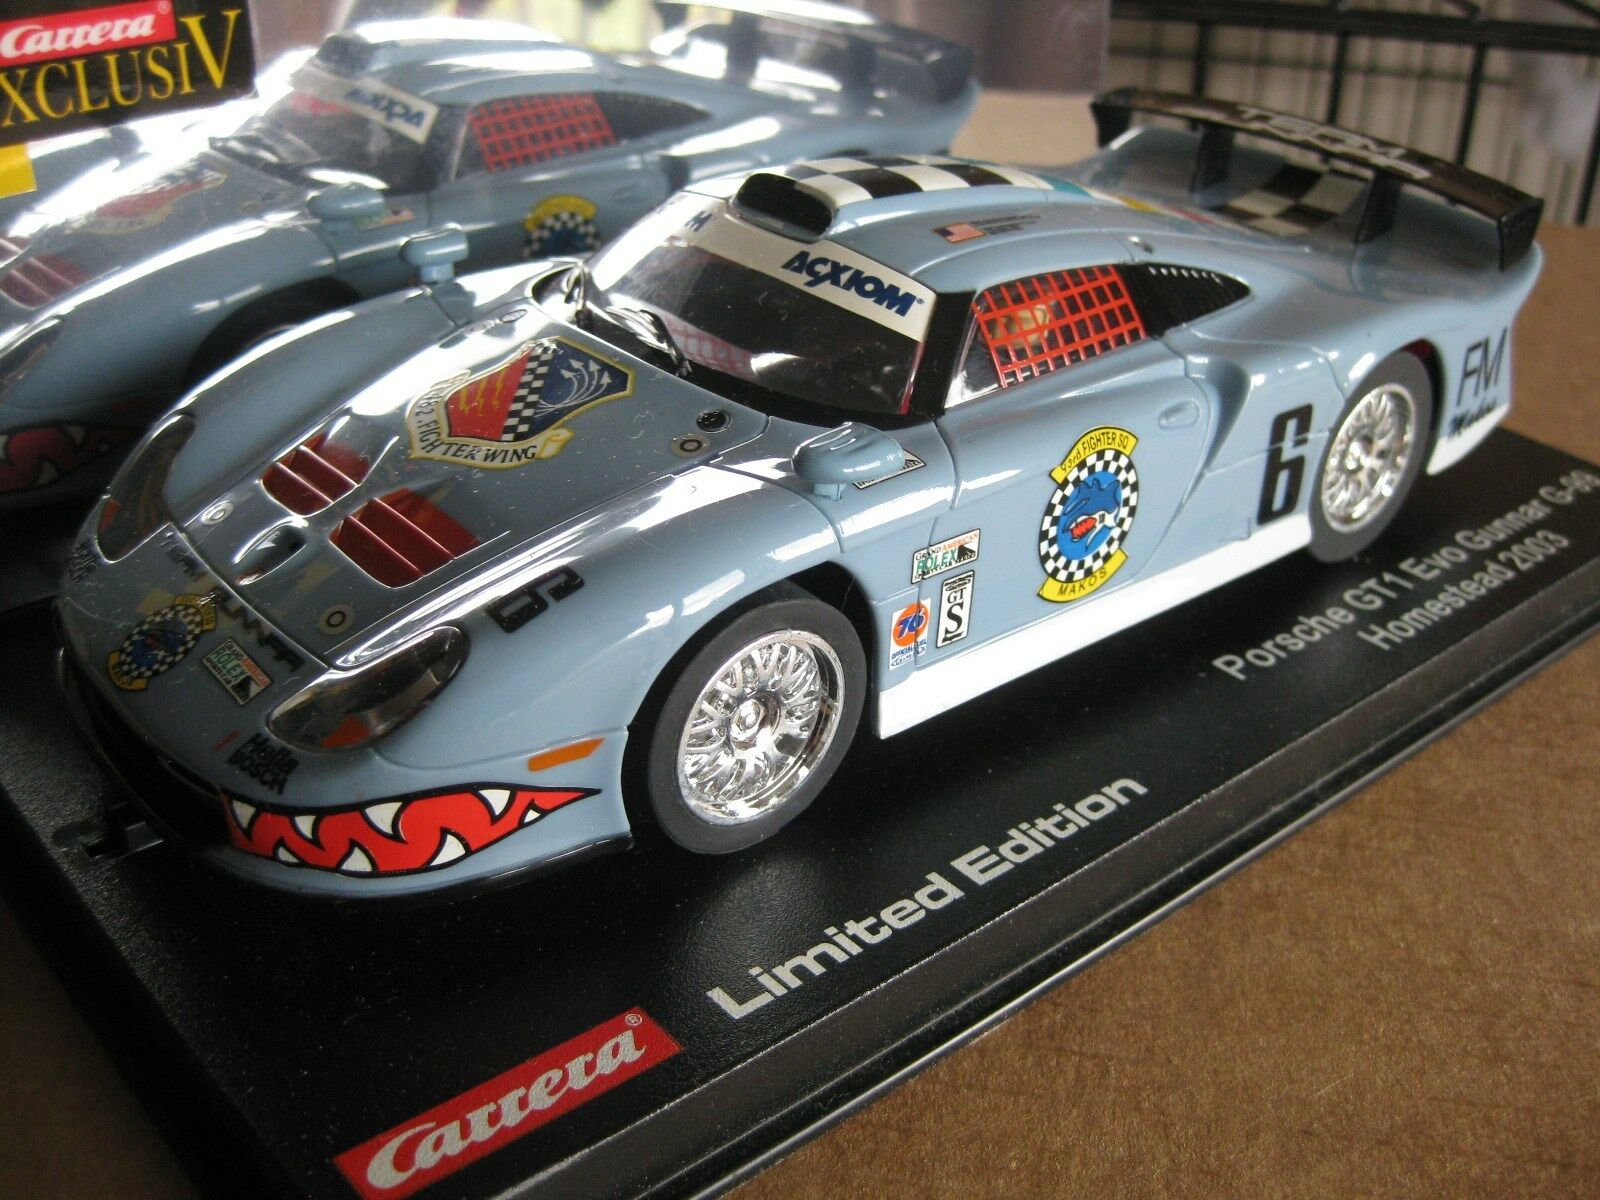 Carrera Exclusiv Analog SLOT CAR 1 24 scale  Rare Limited Edition